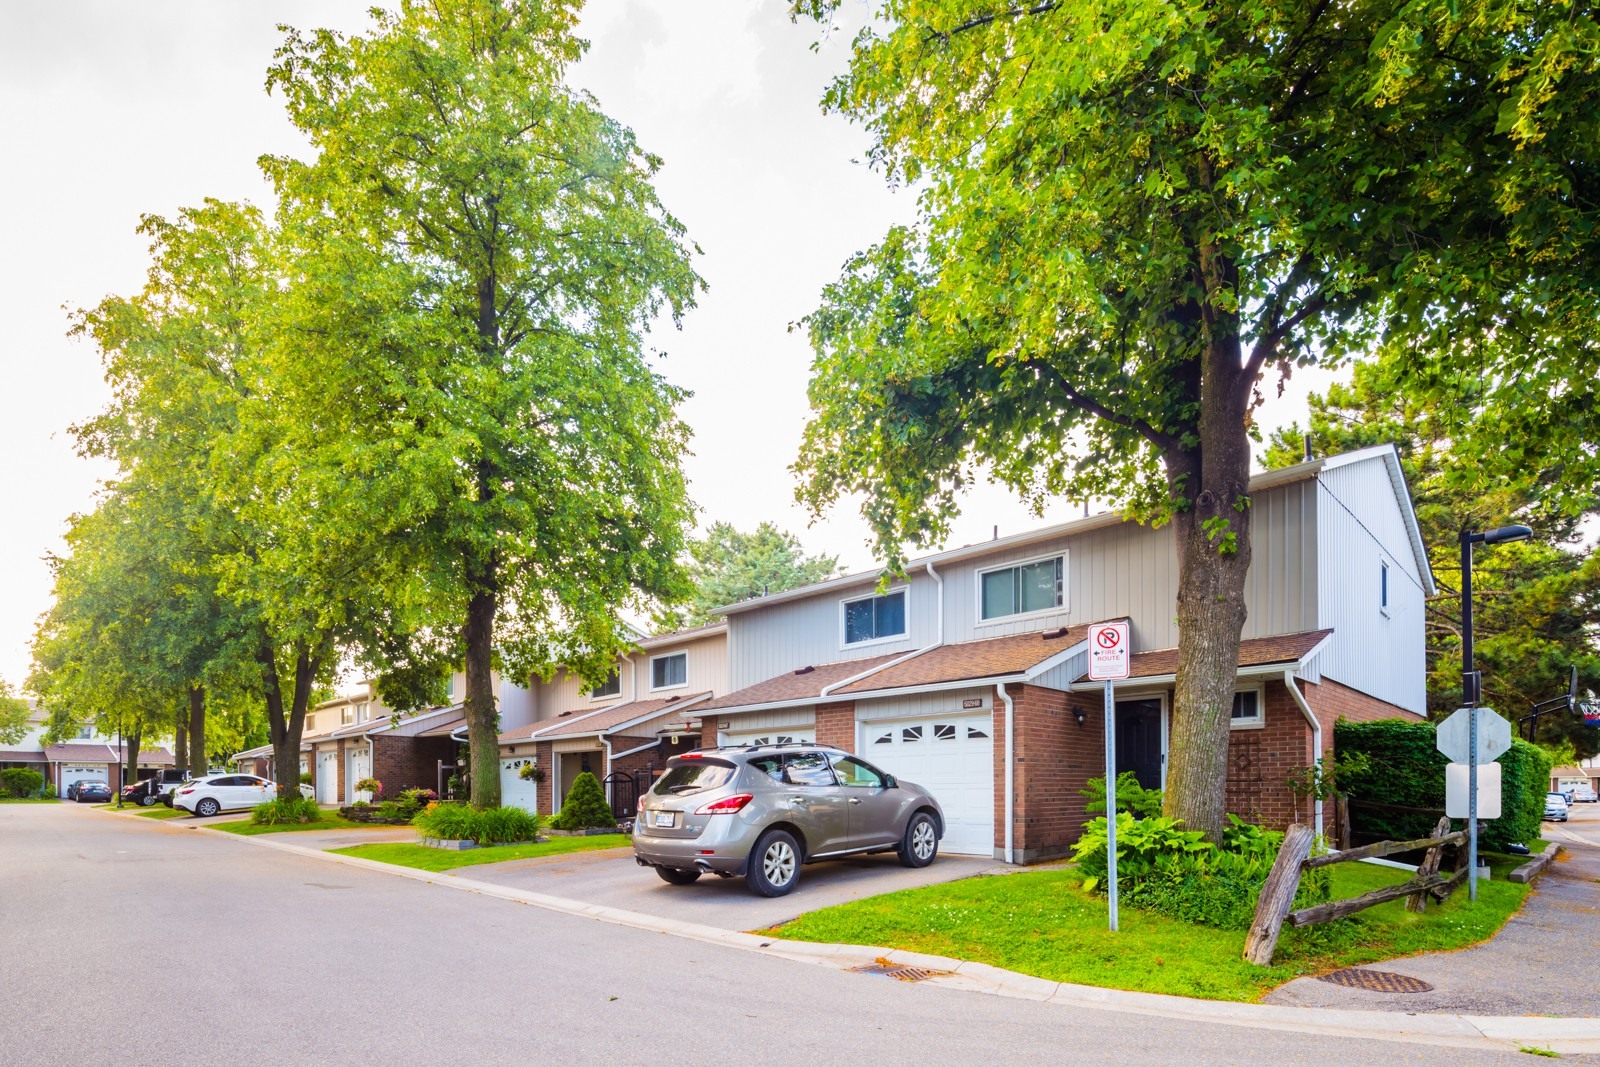 5021 Pinedale Ave Townhouses at 5009 Pinedale Ave, Burlington 1